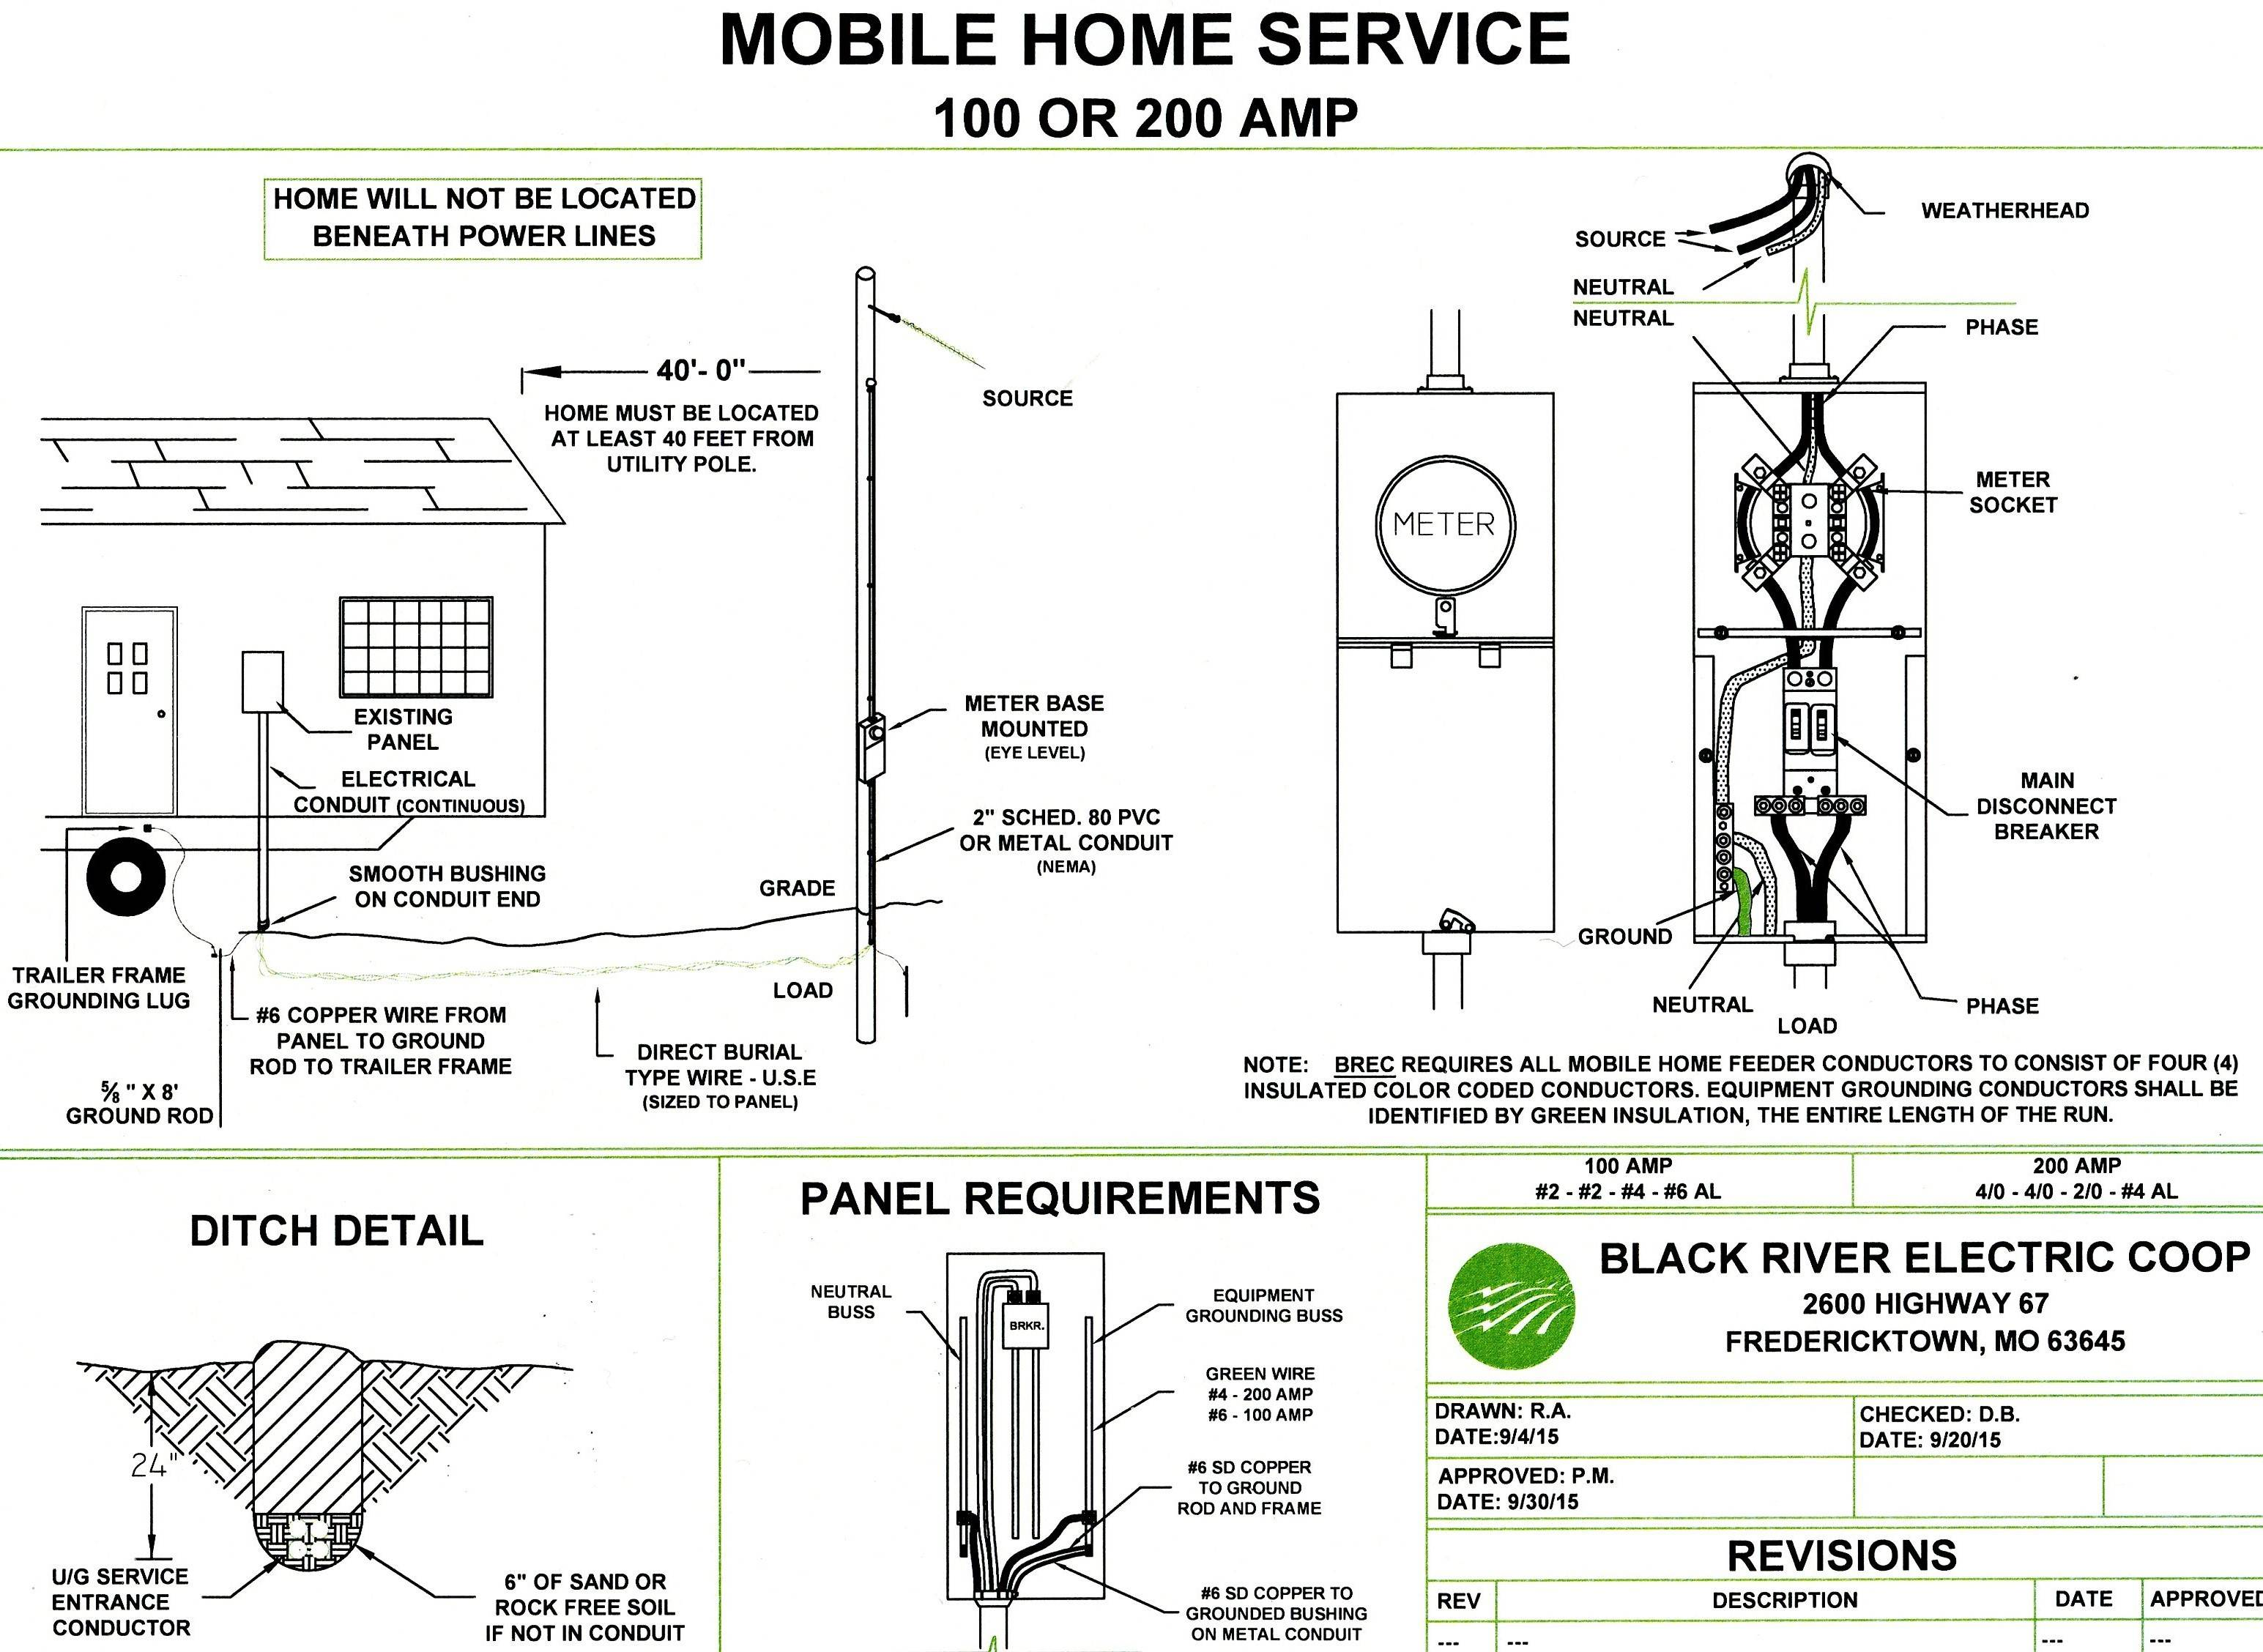 Amp Mobile Home Service Wire Wiring Diagram